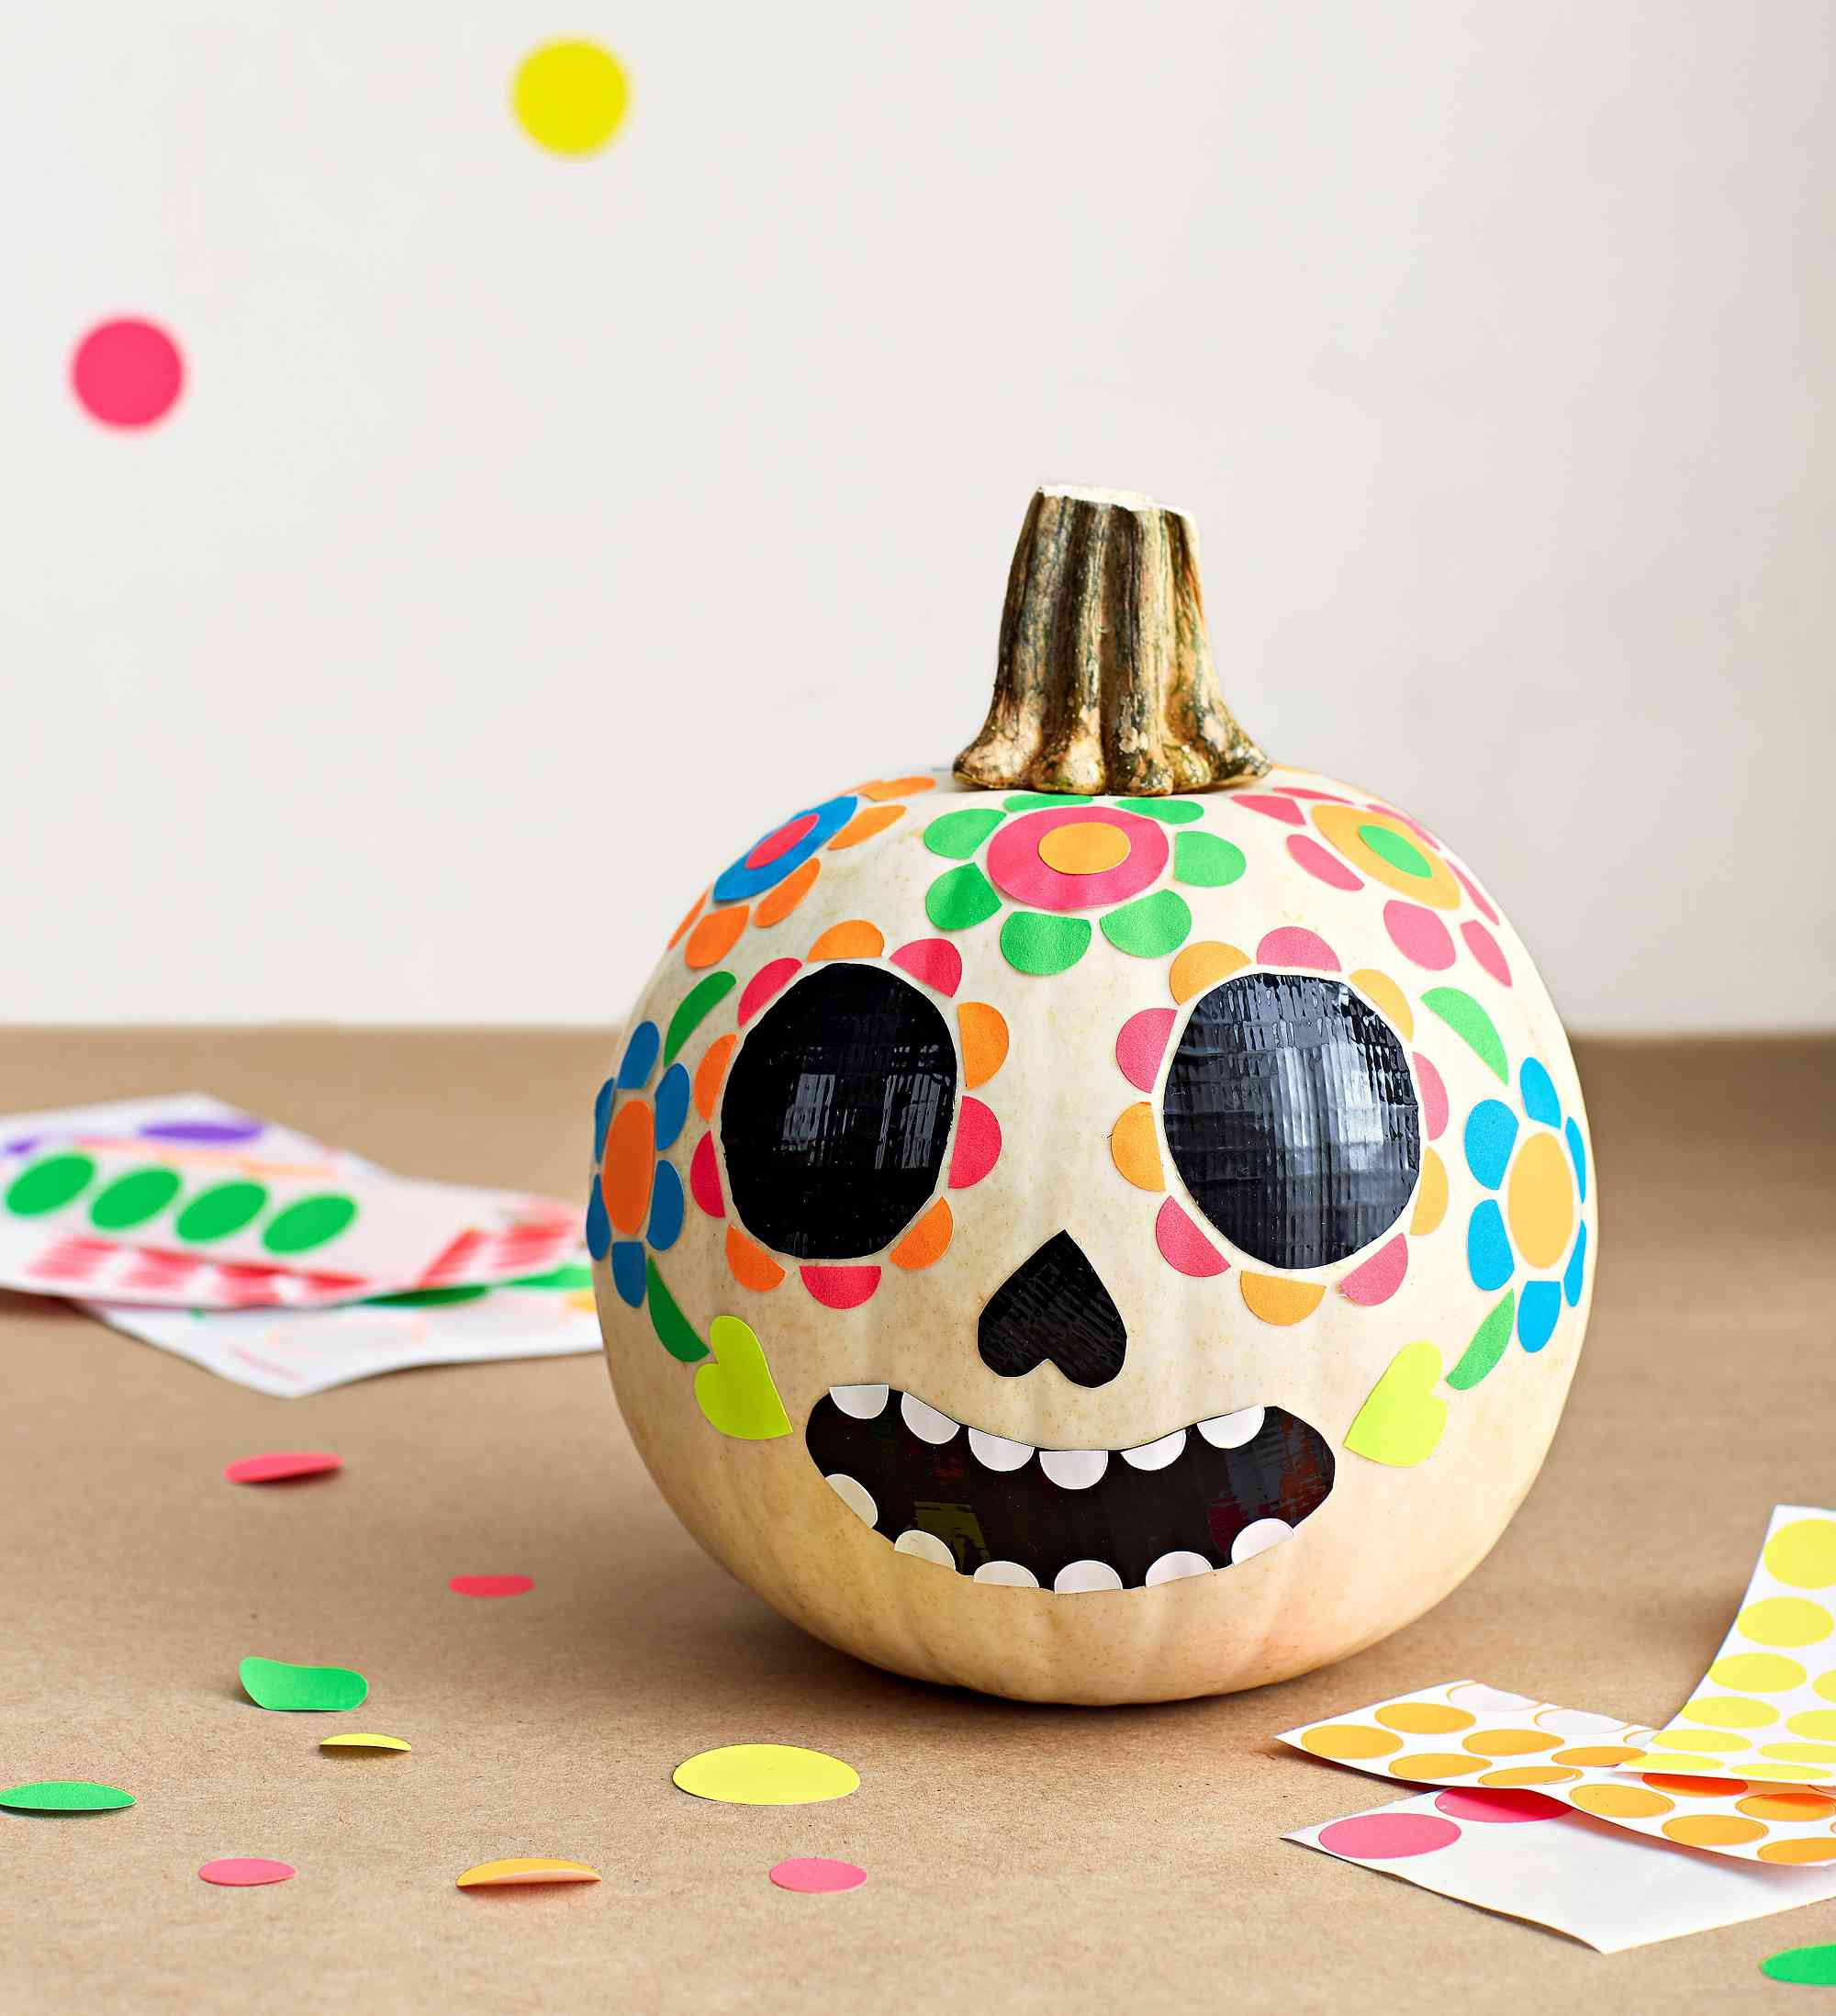 Easy No Carve Pumpkin Decorating Ideas For Kids